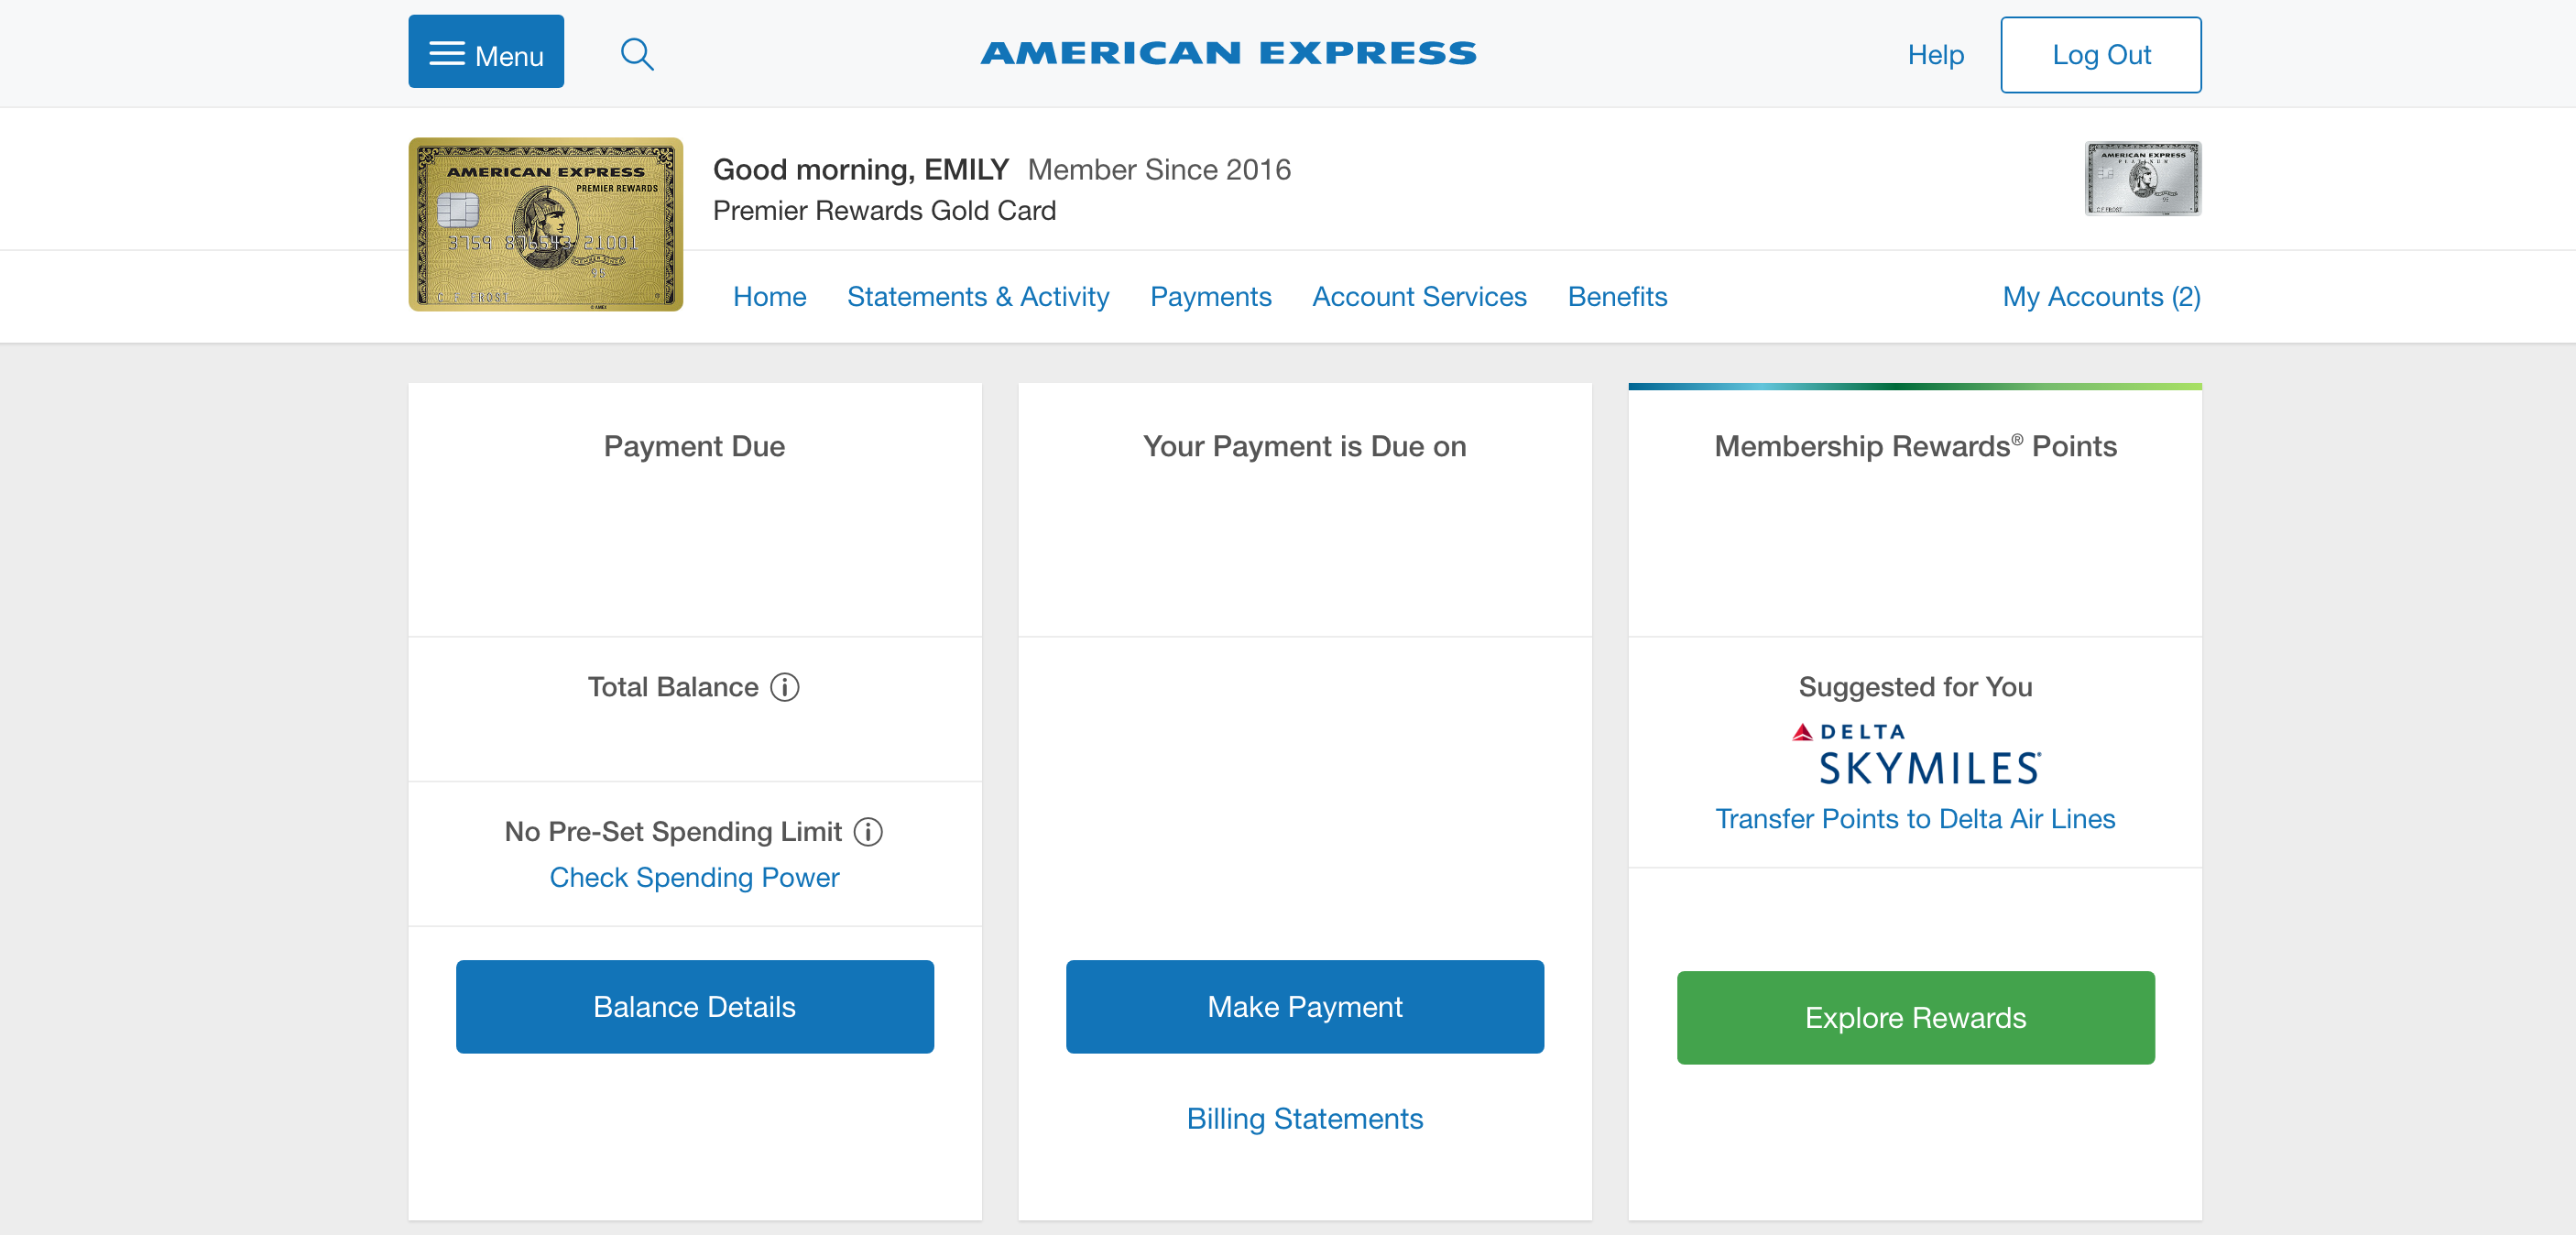 American Express Launches New Account Dashboard